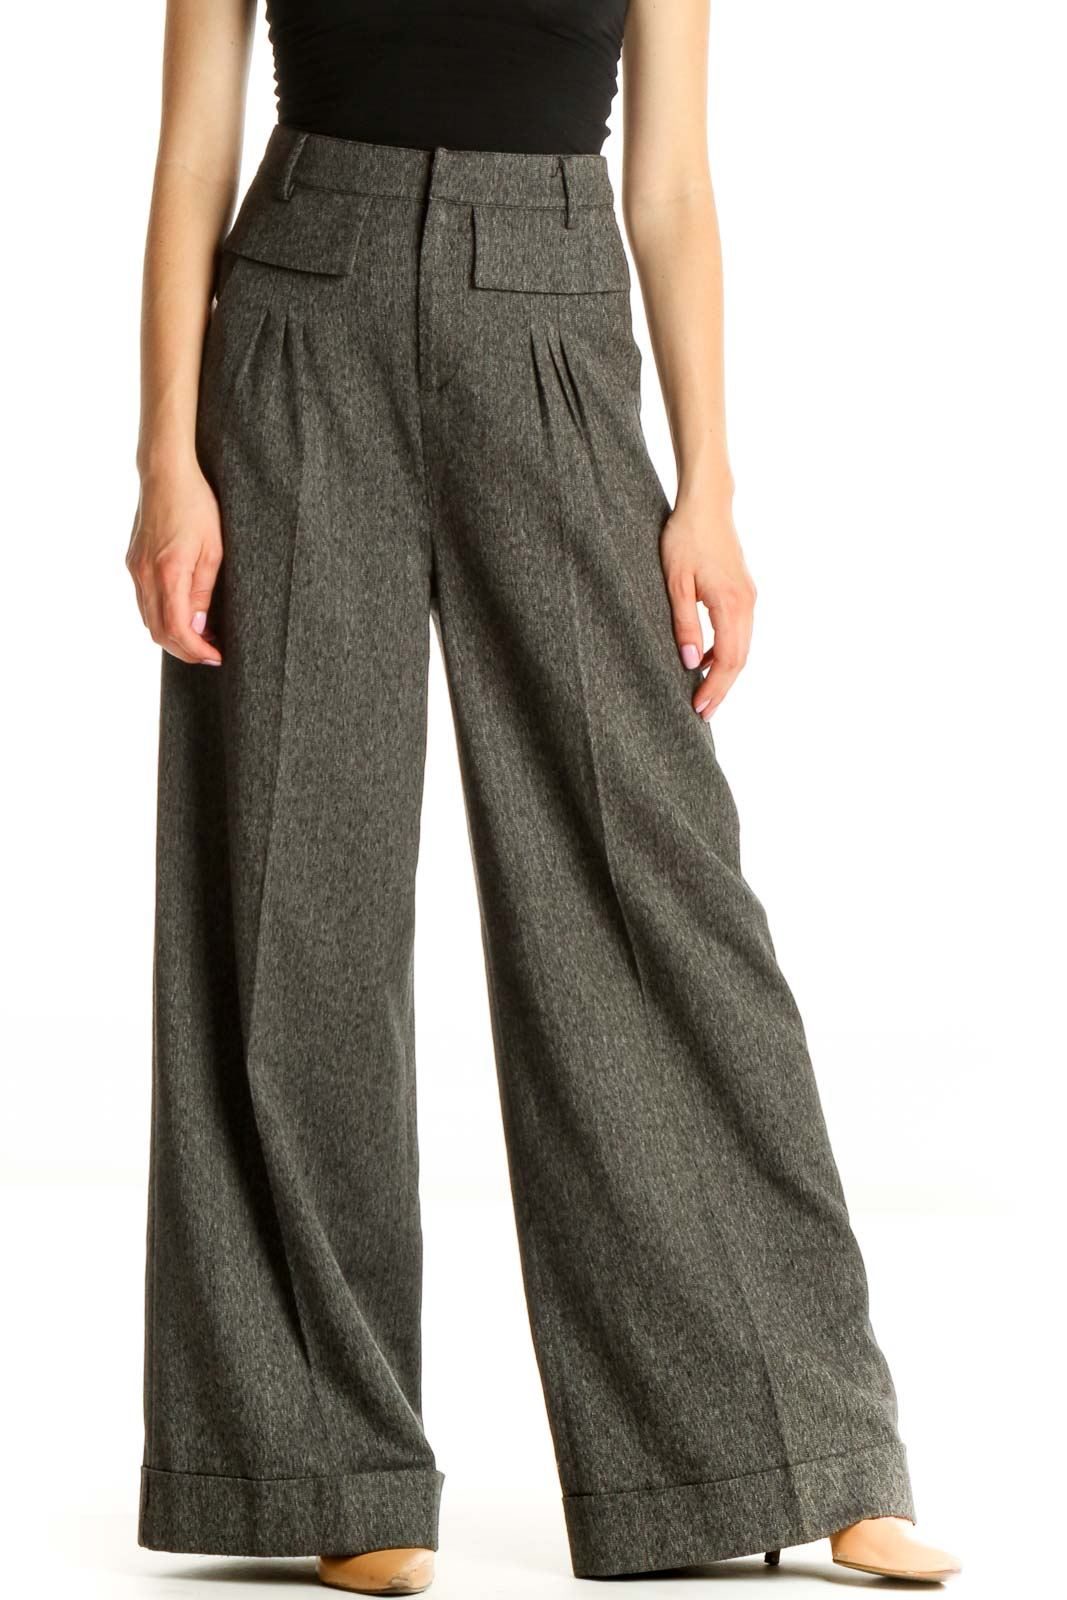 Gray Textured All Day Wear Palazzo Pants Front